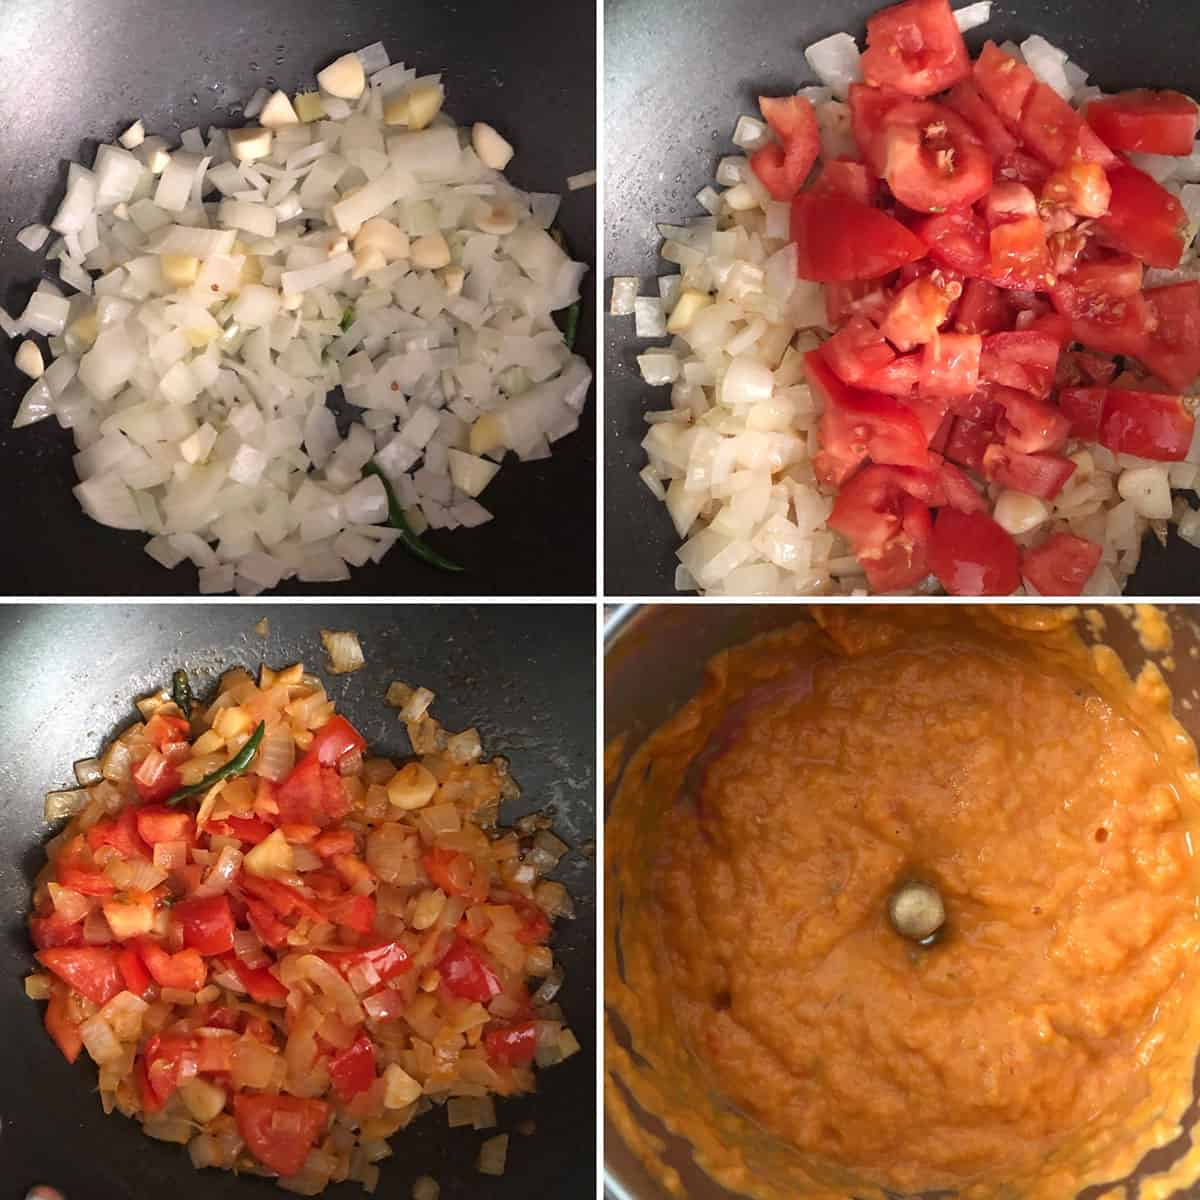 Sautéed onion, tomato and ground to a paste